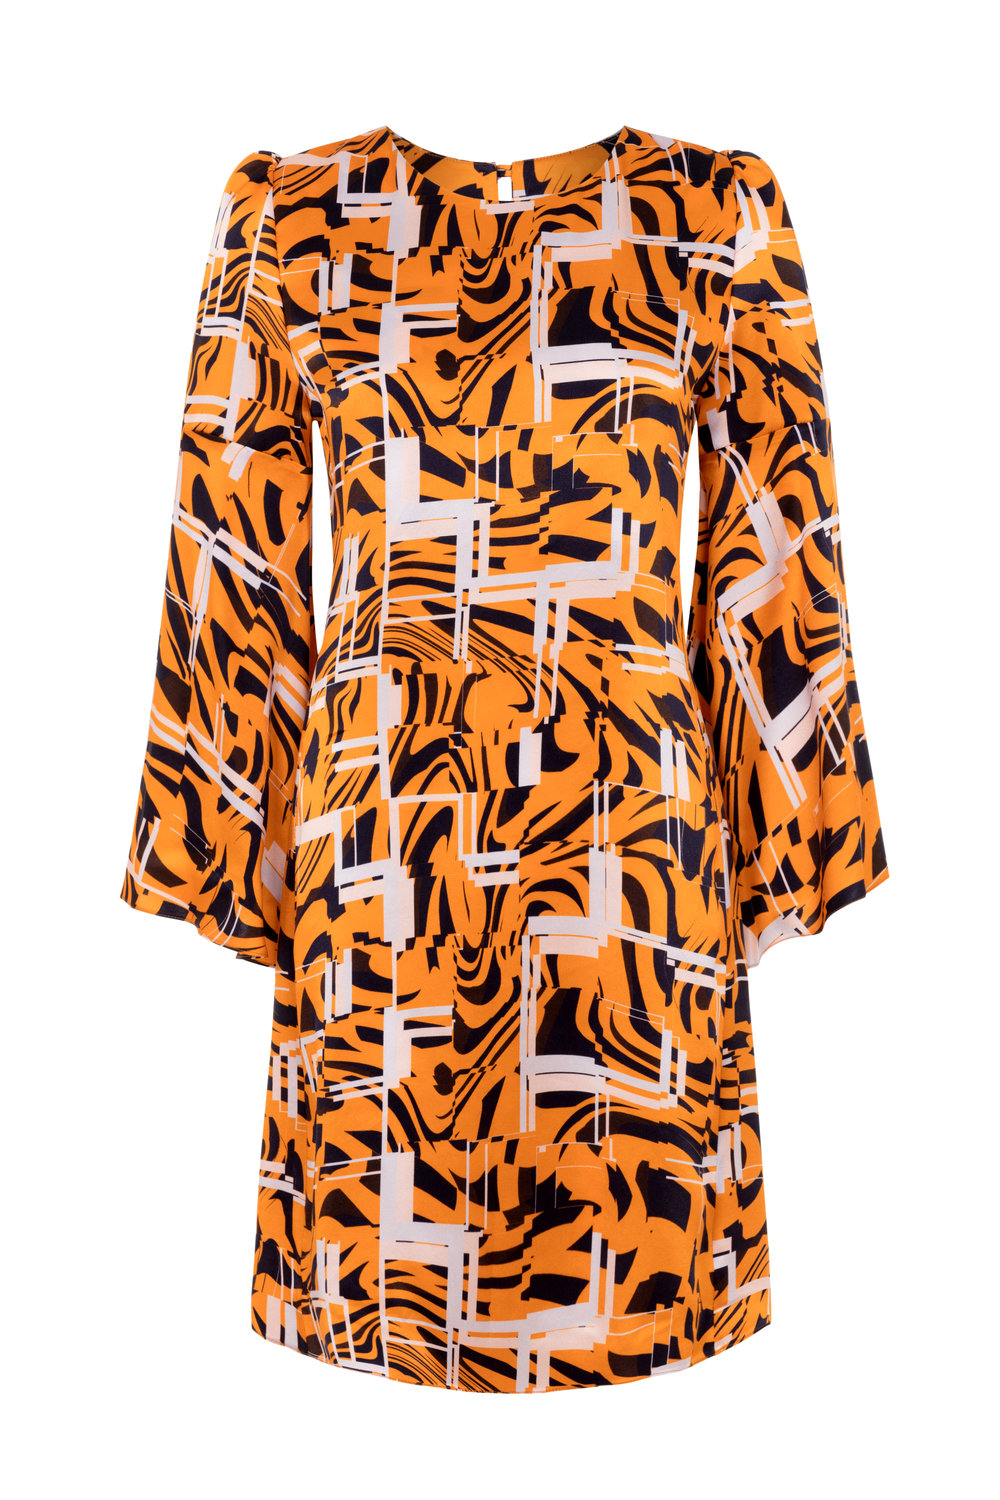 ELLIE LINES GEORGIE TIGER PRINT SILK PARTY DRESS